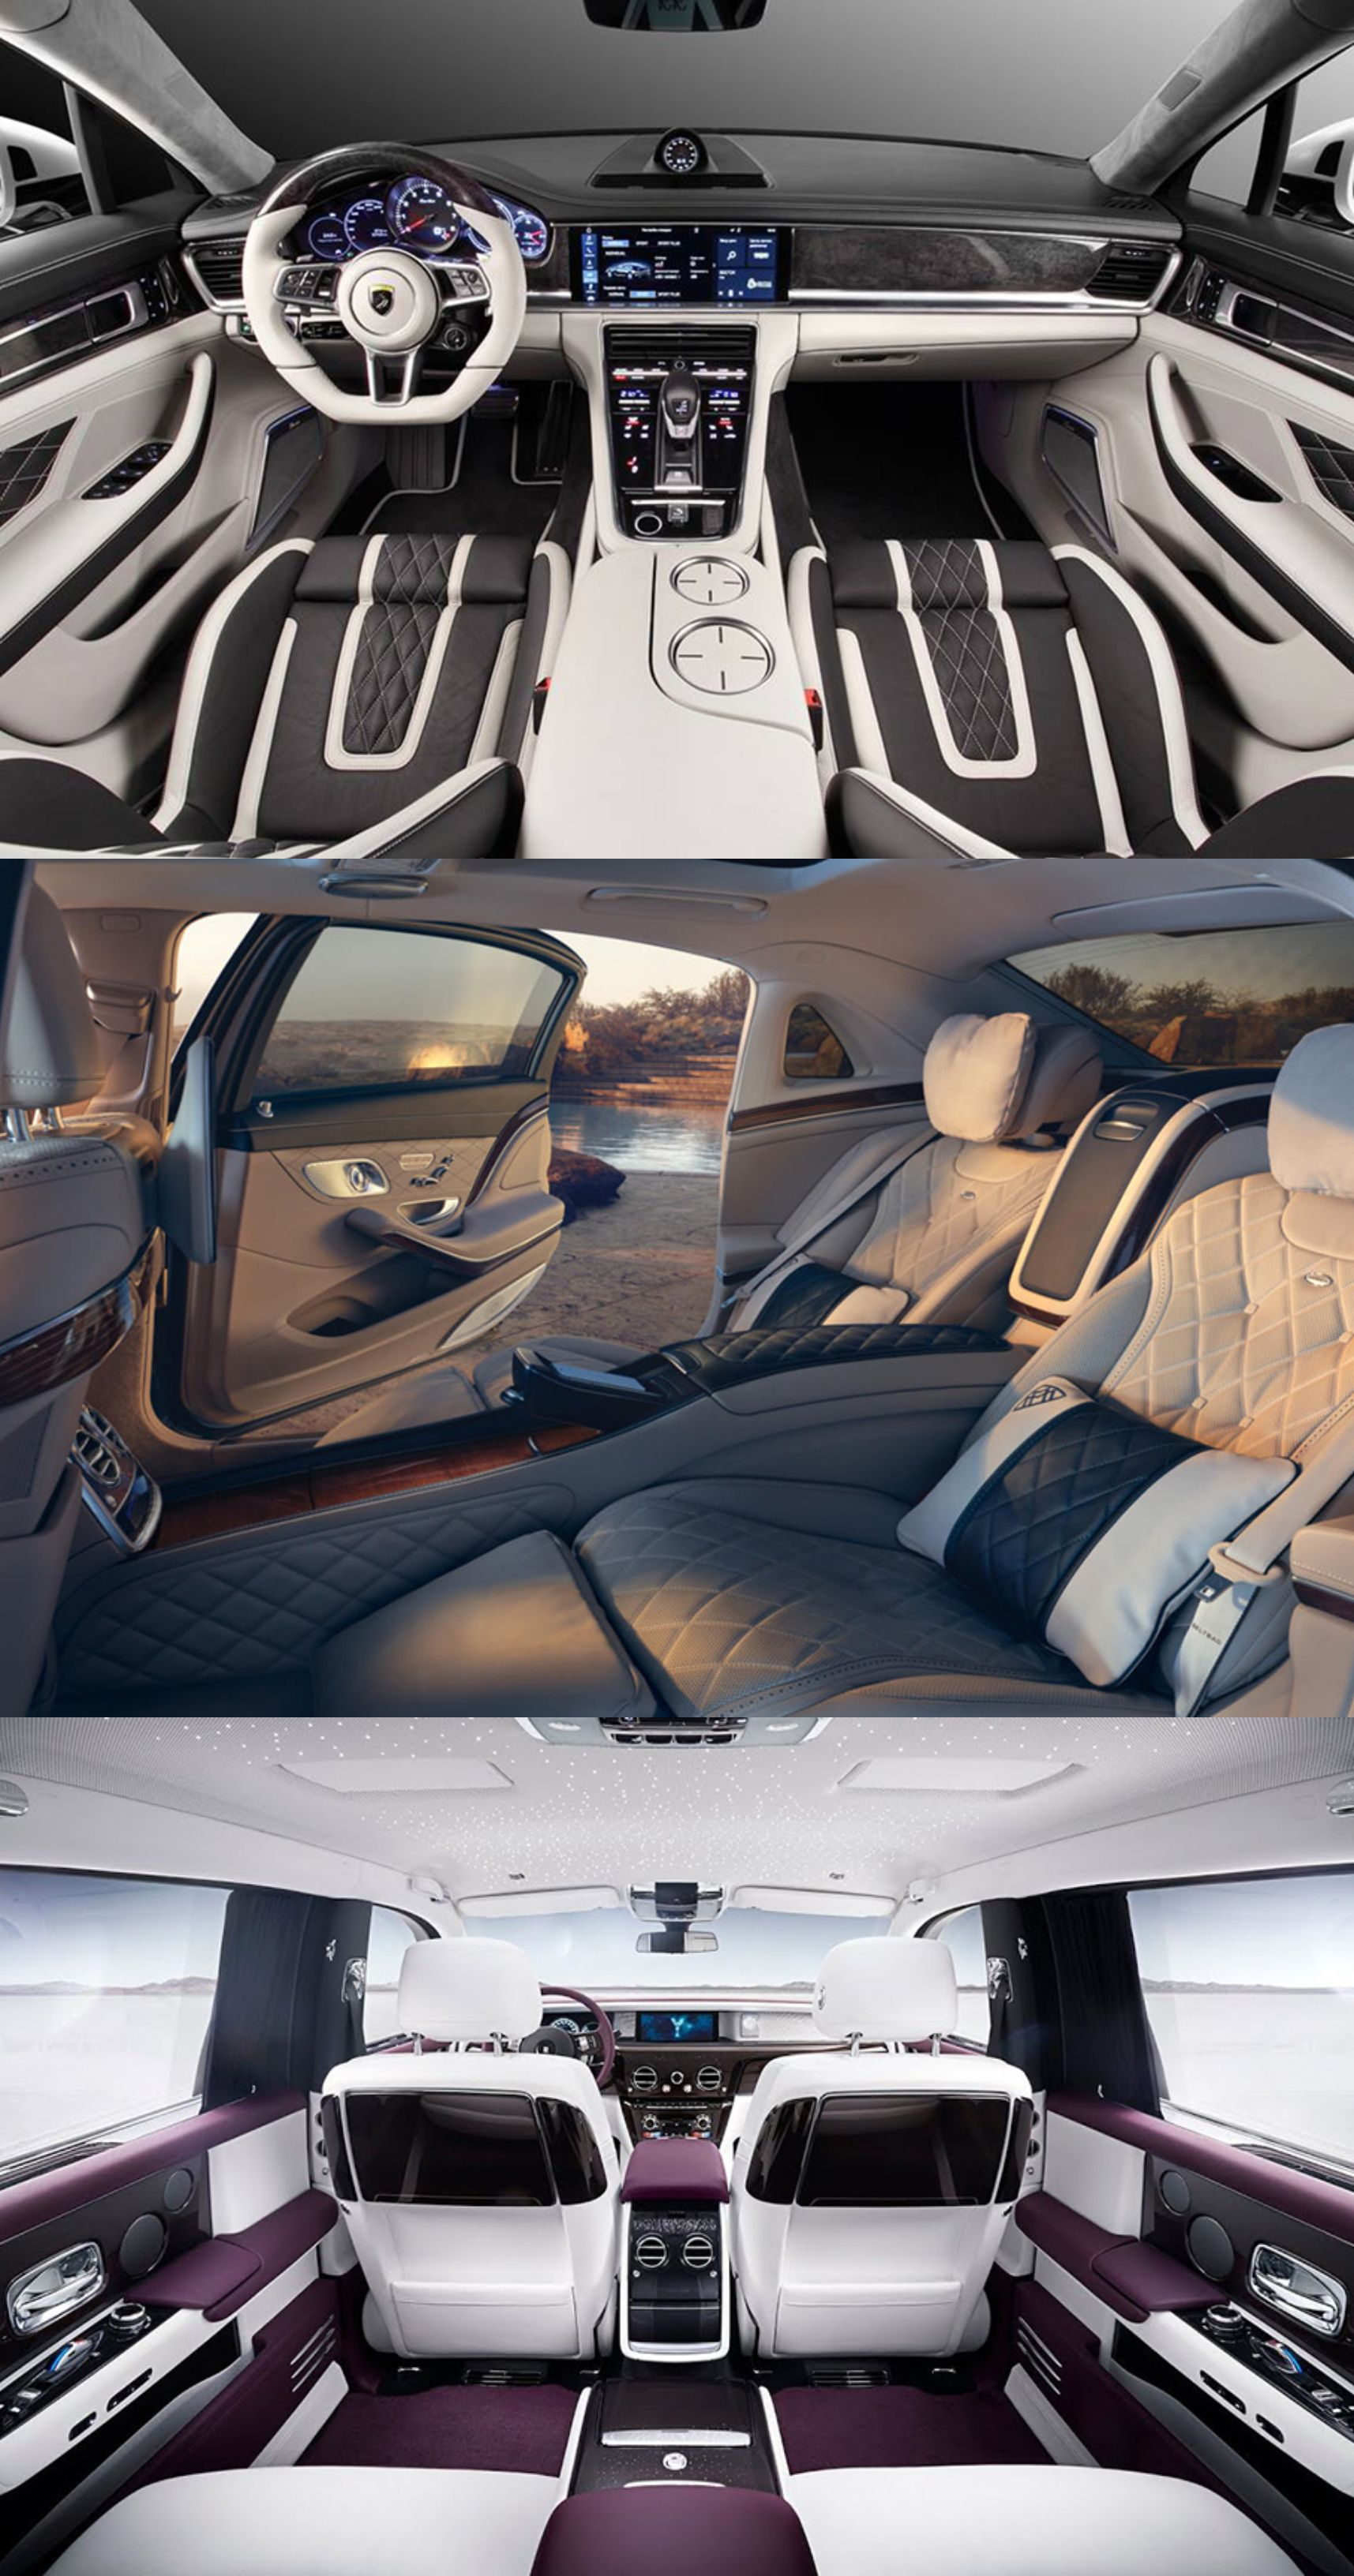 10 Most Luxurious Car Interiors That Will Shock You